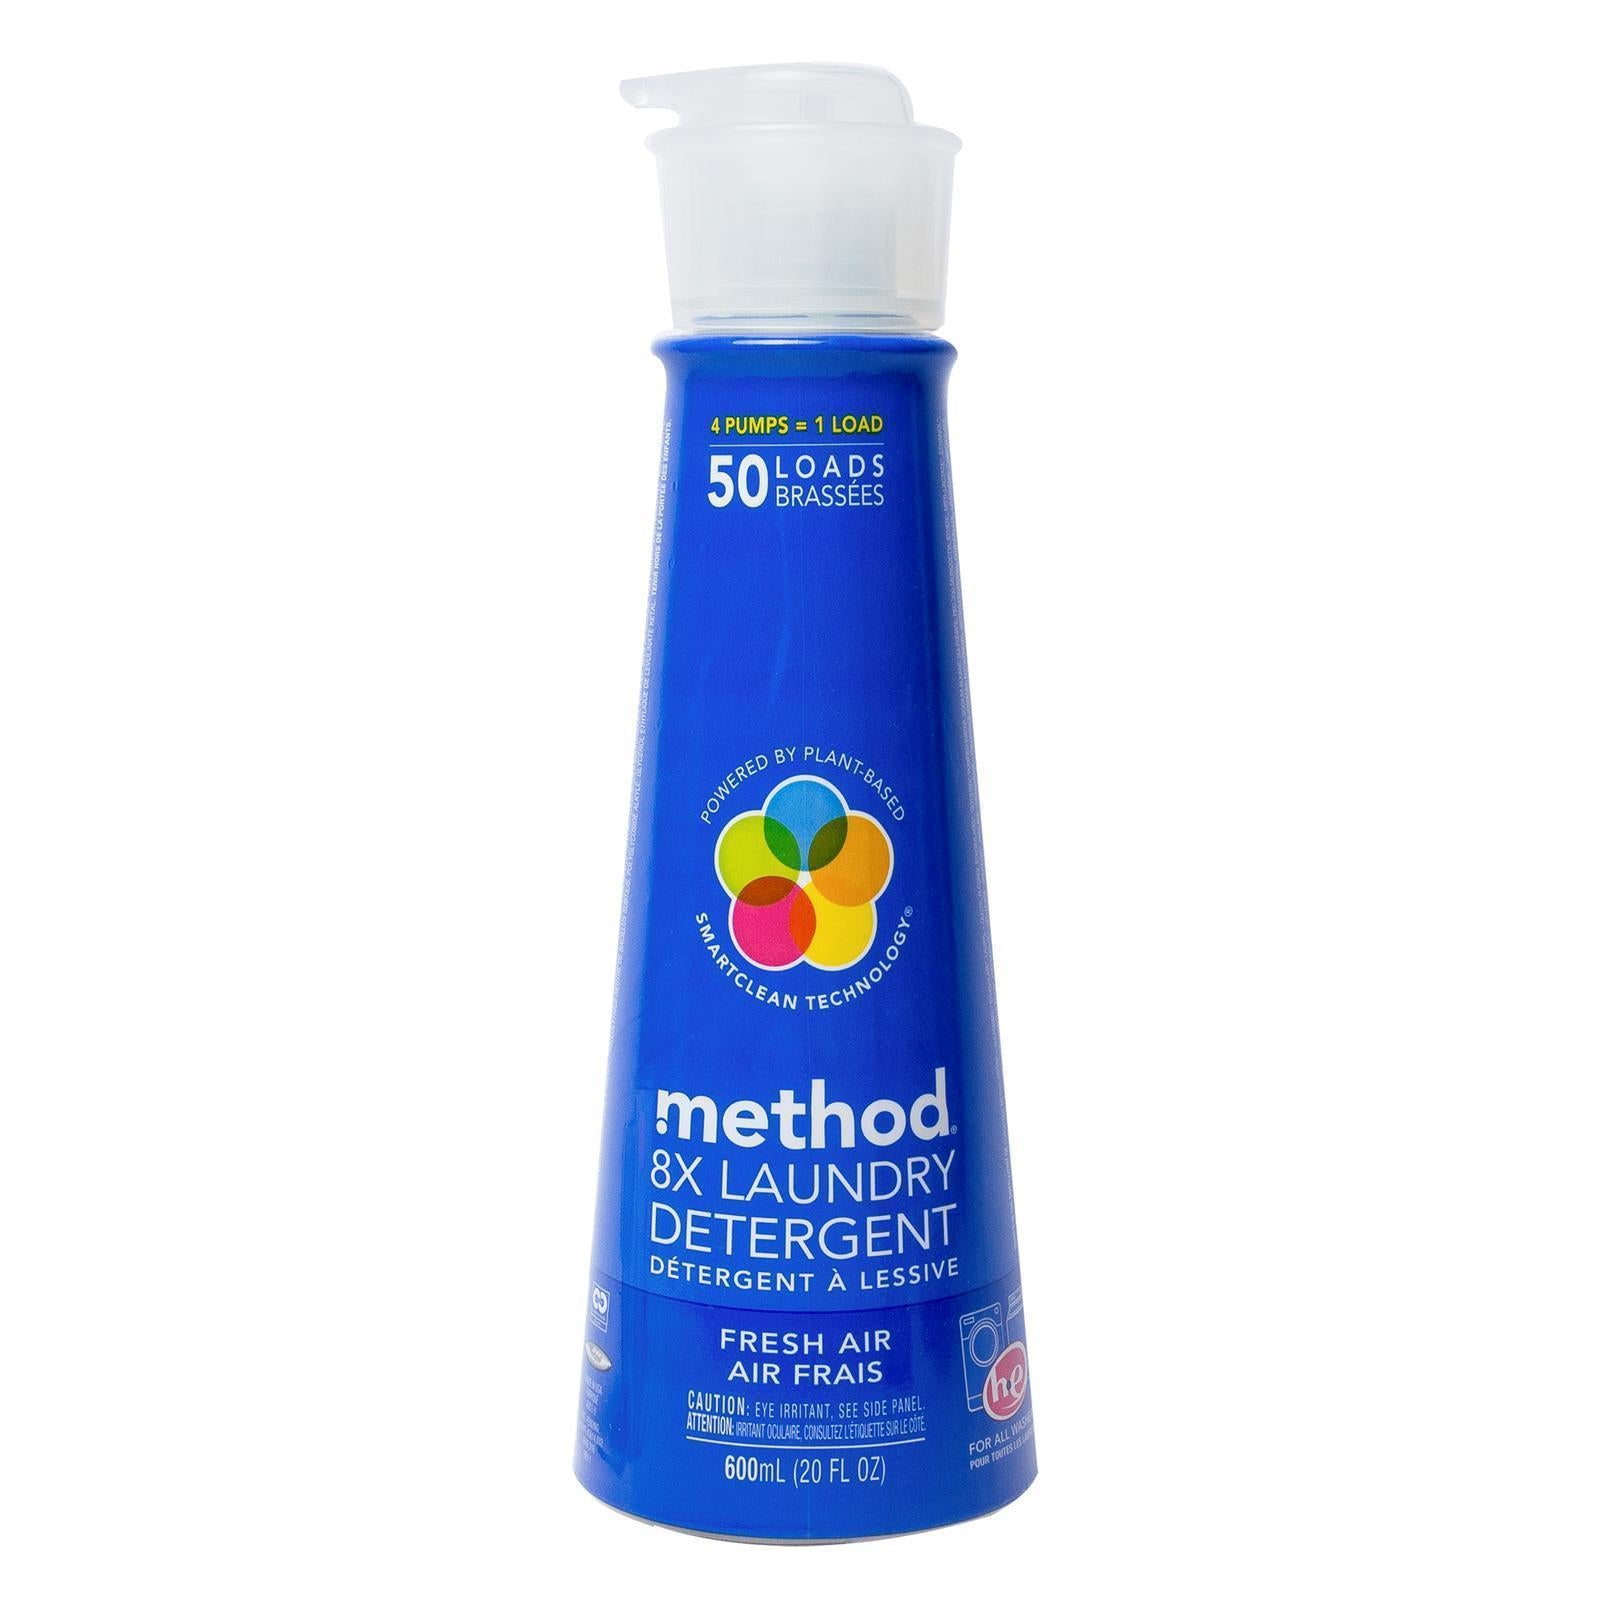 8x Laundry Detergent with Patent-Pending Smartclean Technology™ 600ml- Fresh Air